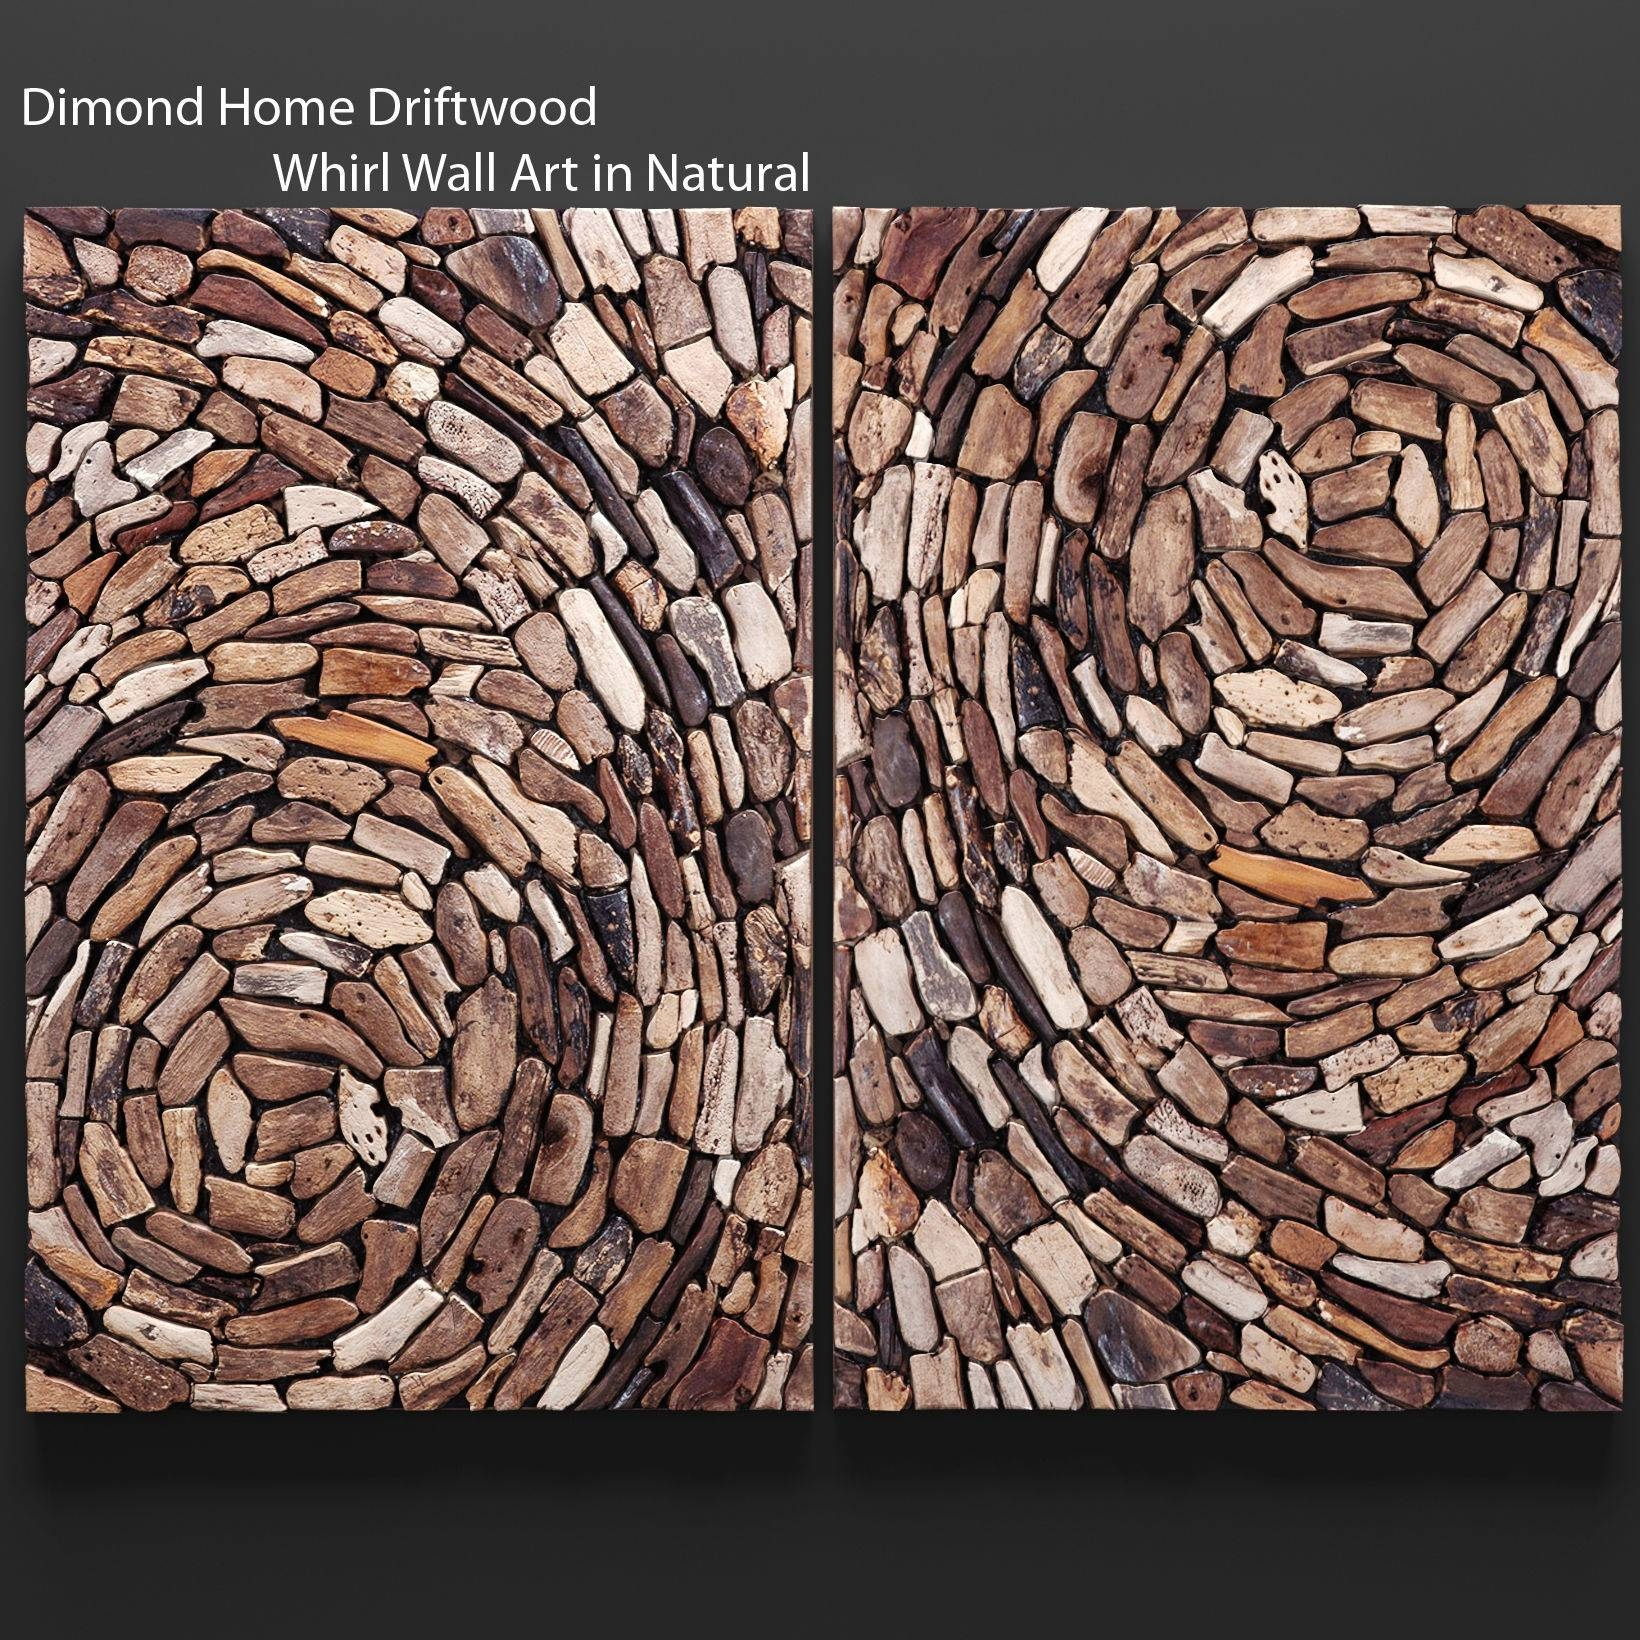 Dimond Home Driftwood Whirl Wall Art In Natural 3D Model Max Obj Inside Most Recent Driftwood Wall Art (View 23 of 30)